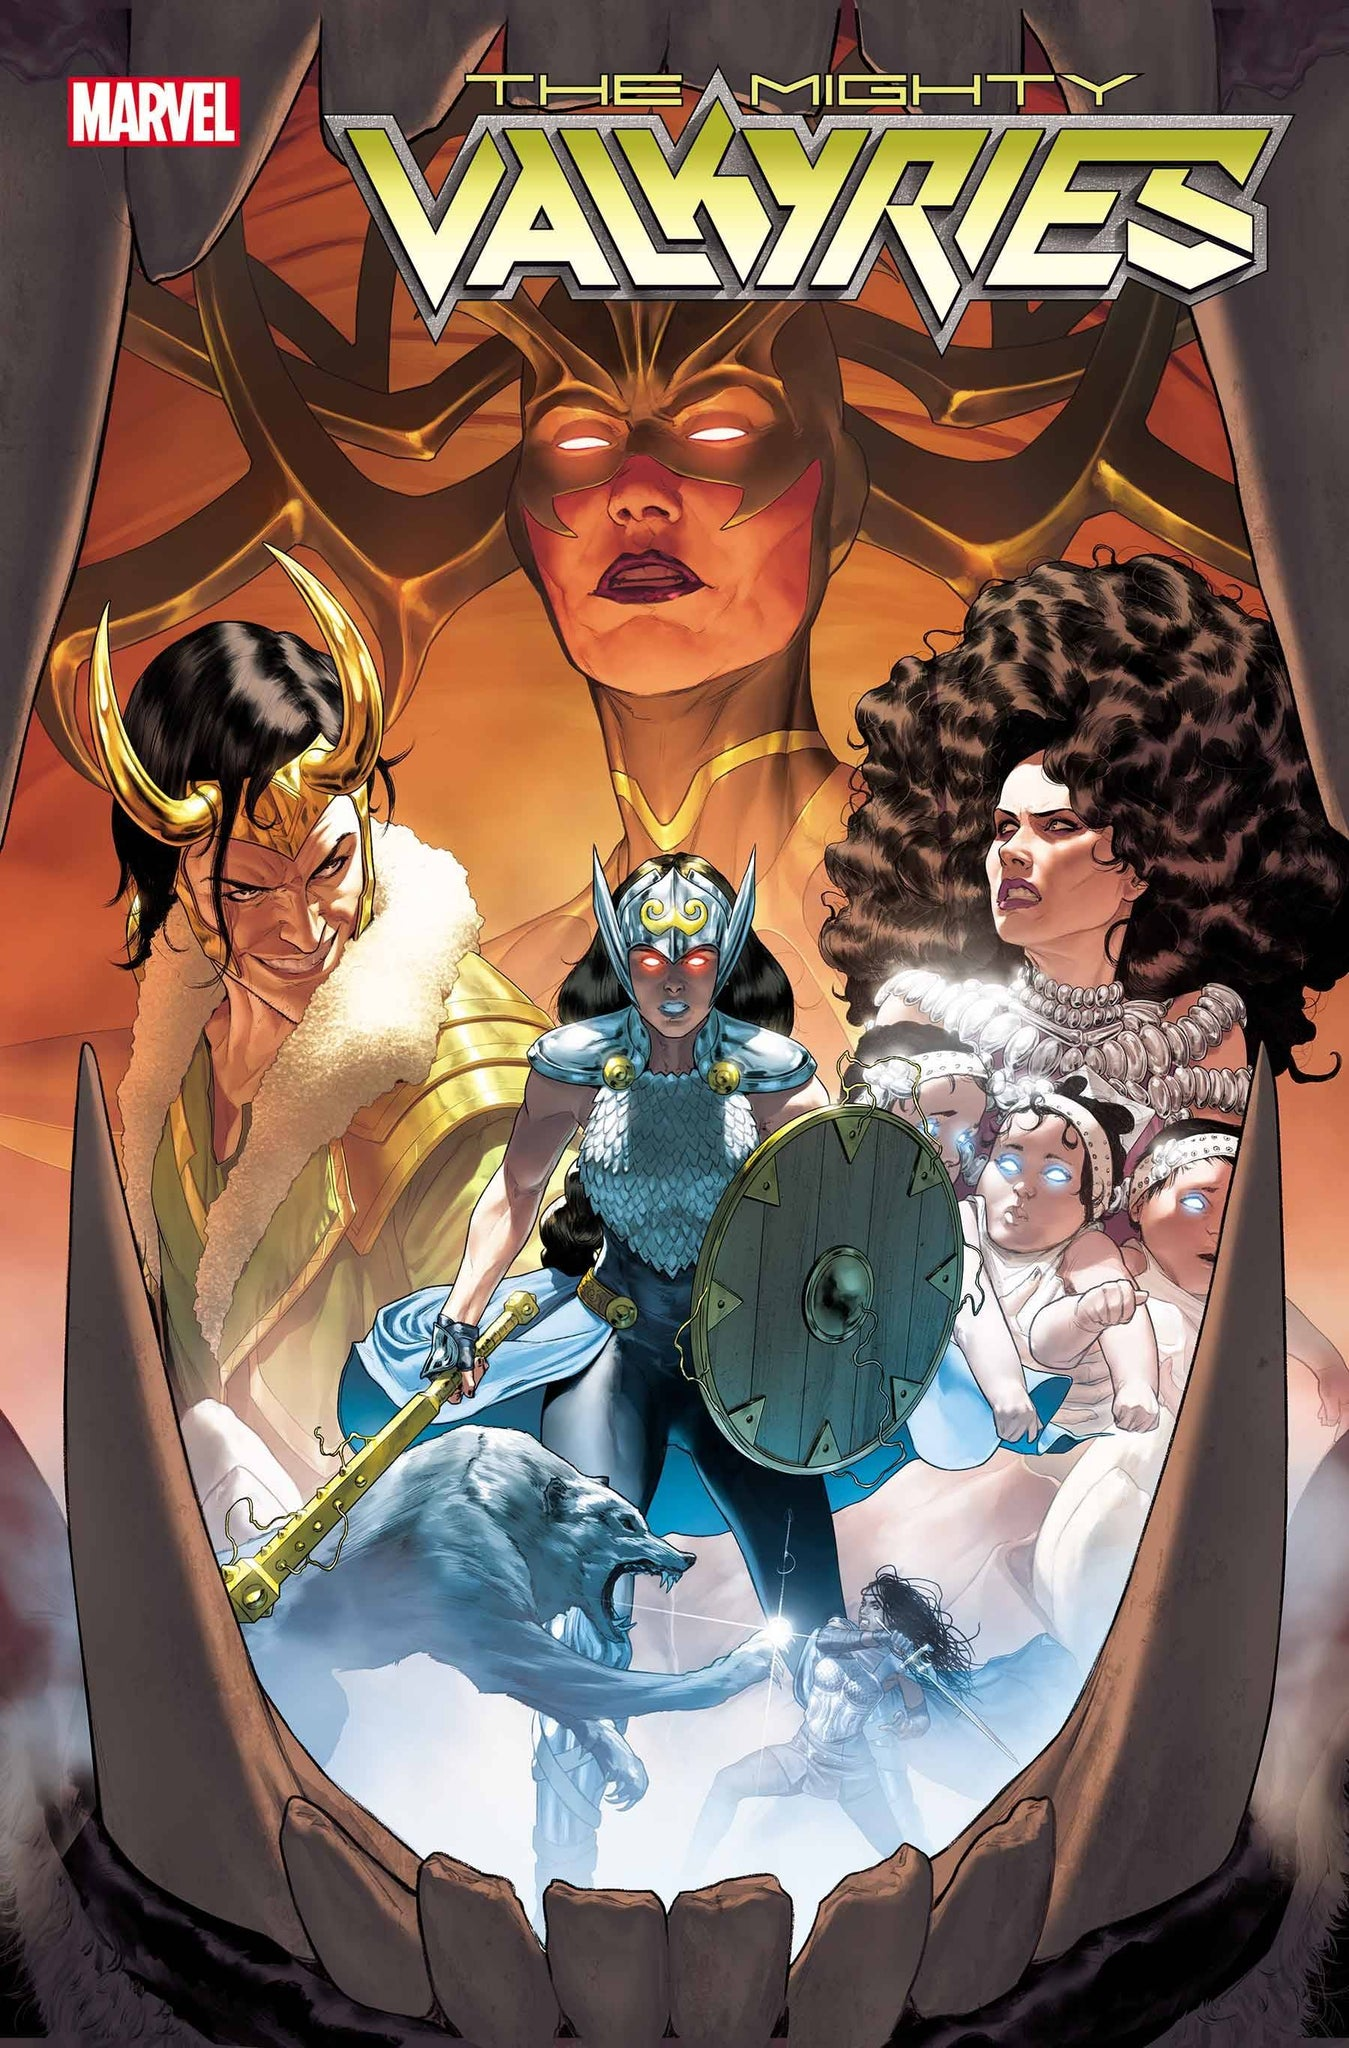 MIGHTY VALKYRIES #1 POSTER